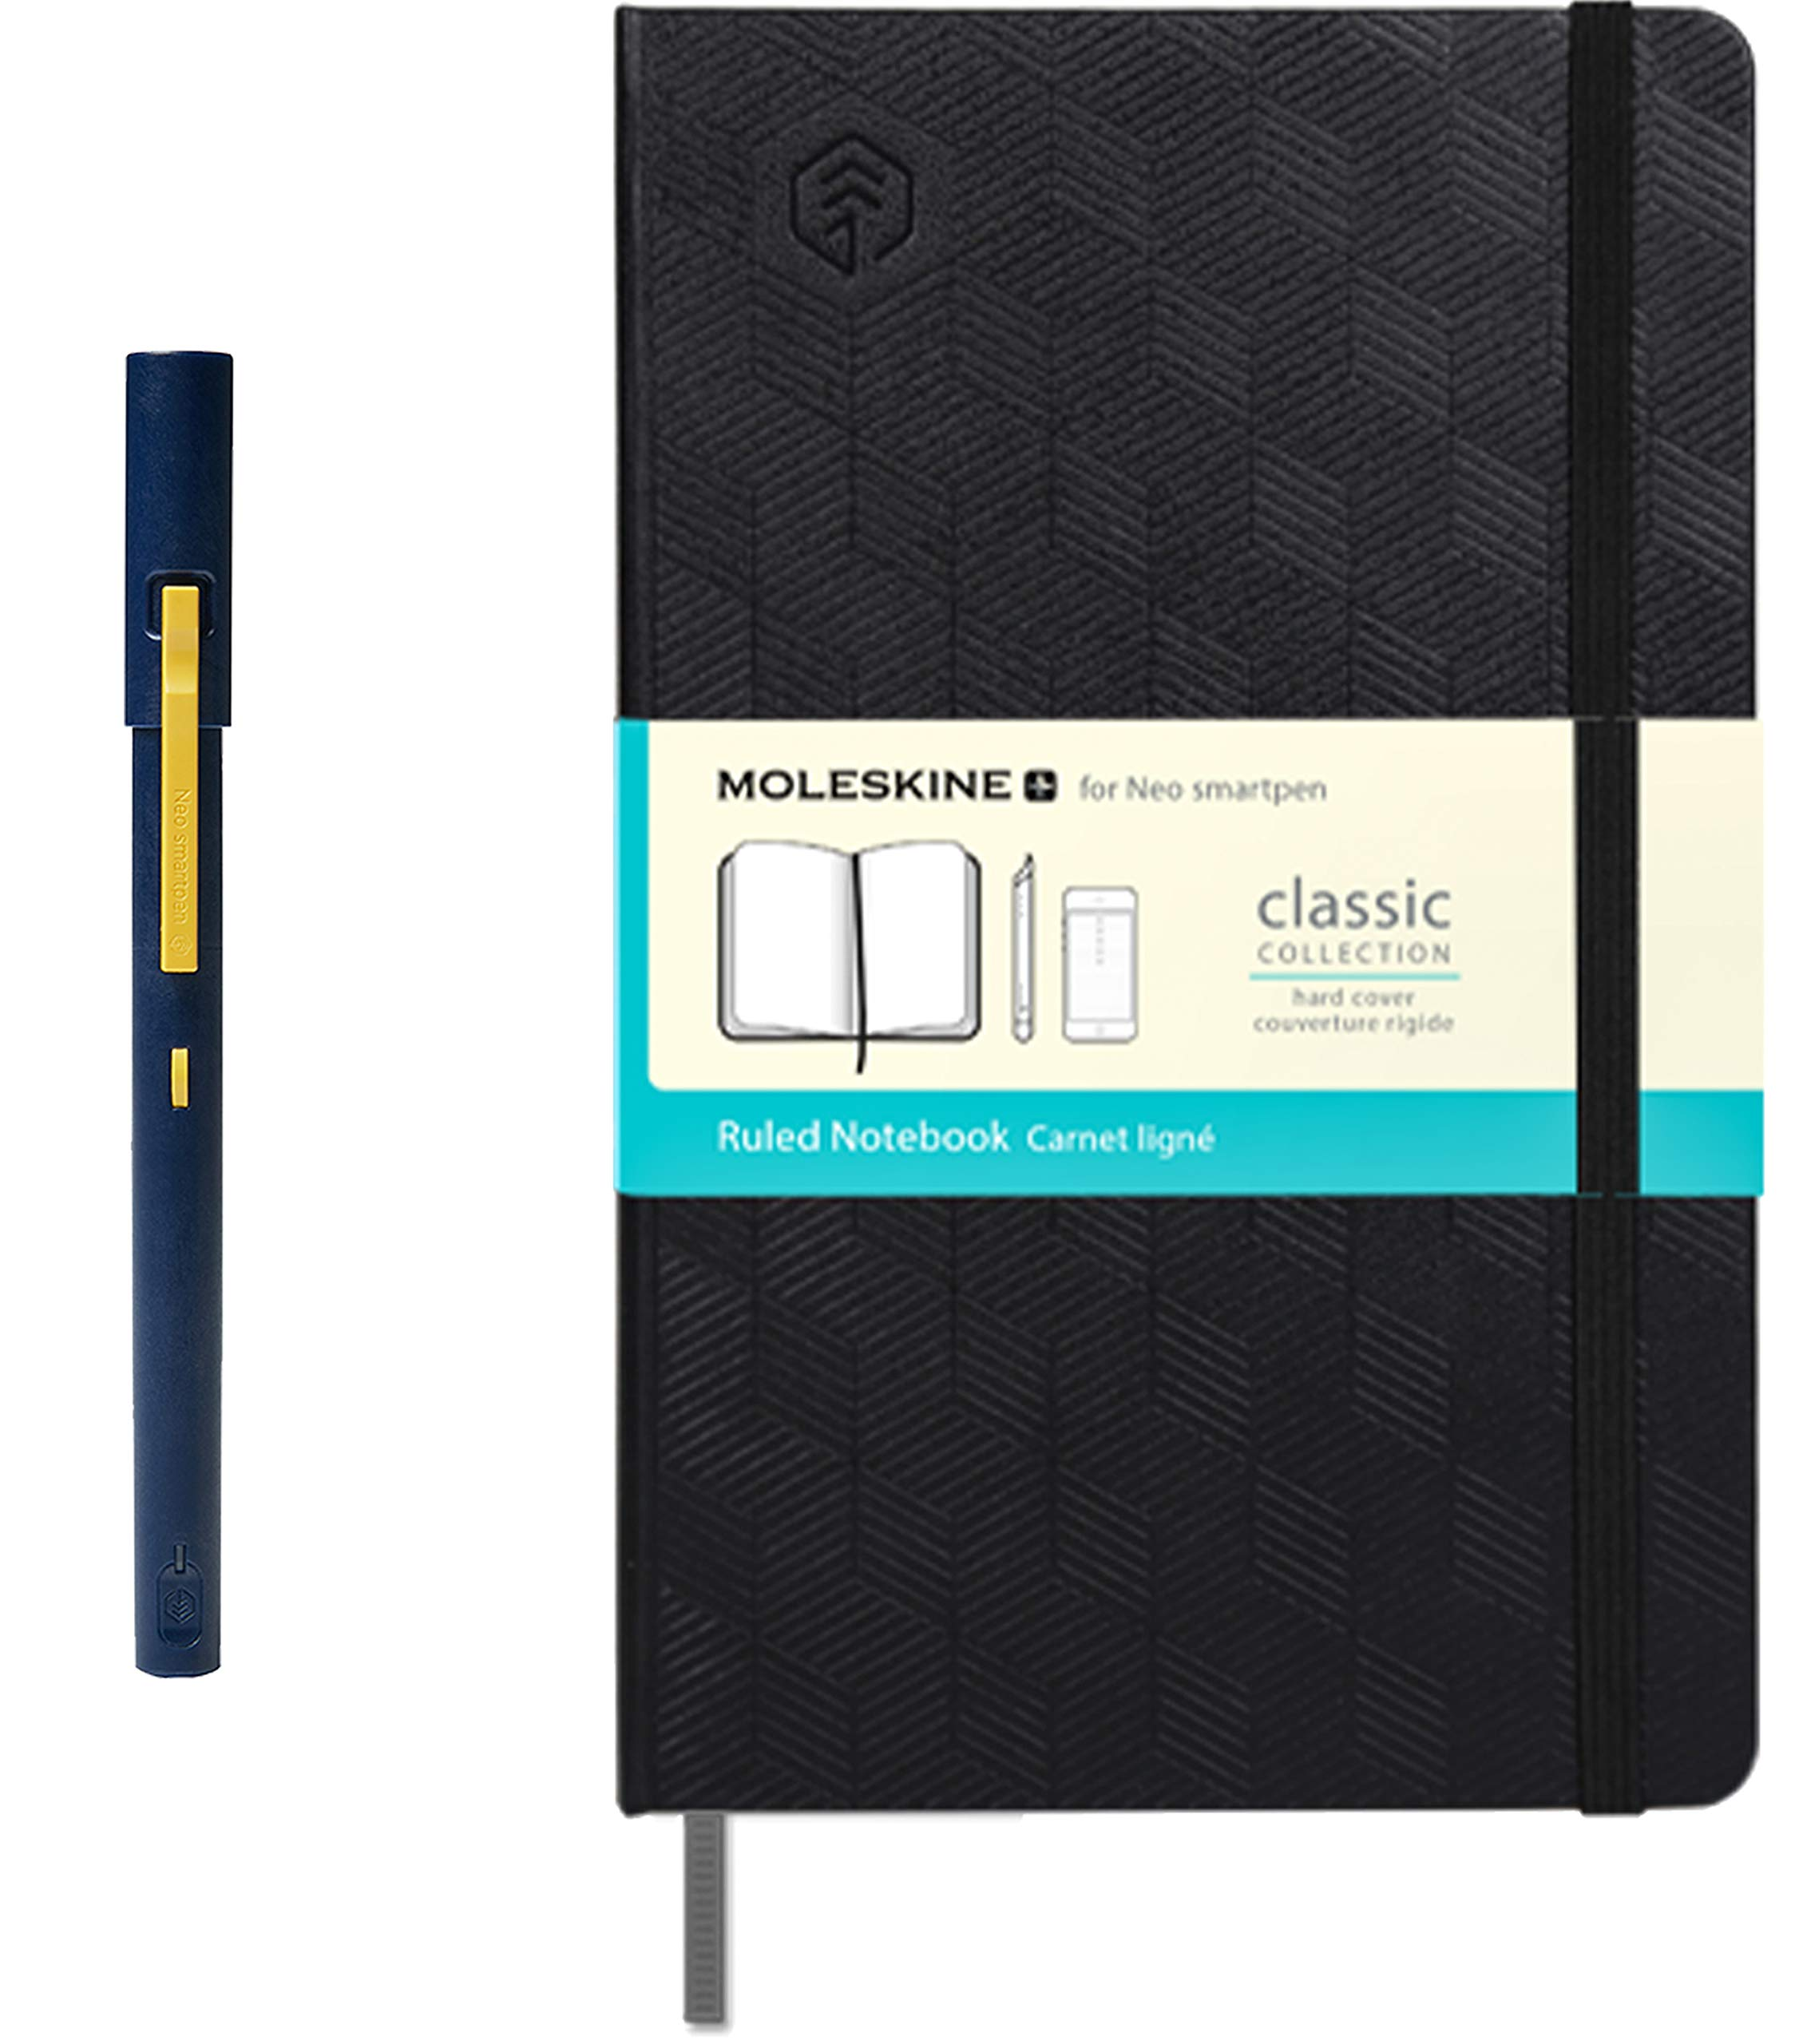 Neo Smartpen M1 (Navy) with N Water Repellent Hardcover Moleskin Notebook (240 Pages) Bundle for iOS, Android, Smartphones, Tablets, and Windows by NeoLab Convergence